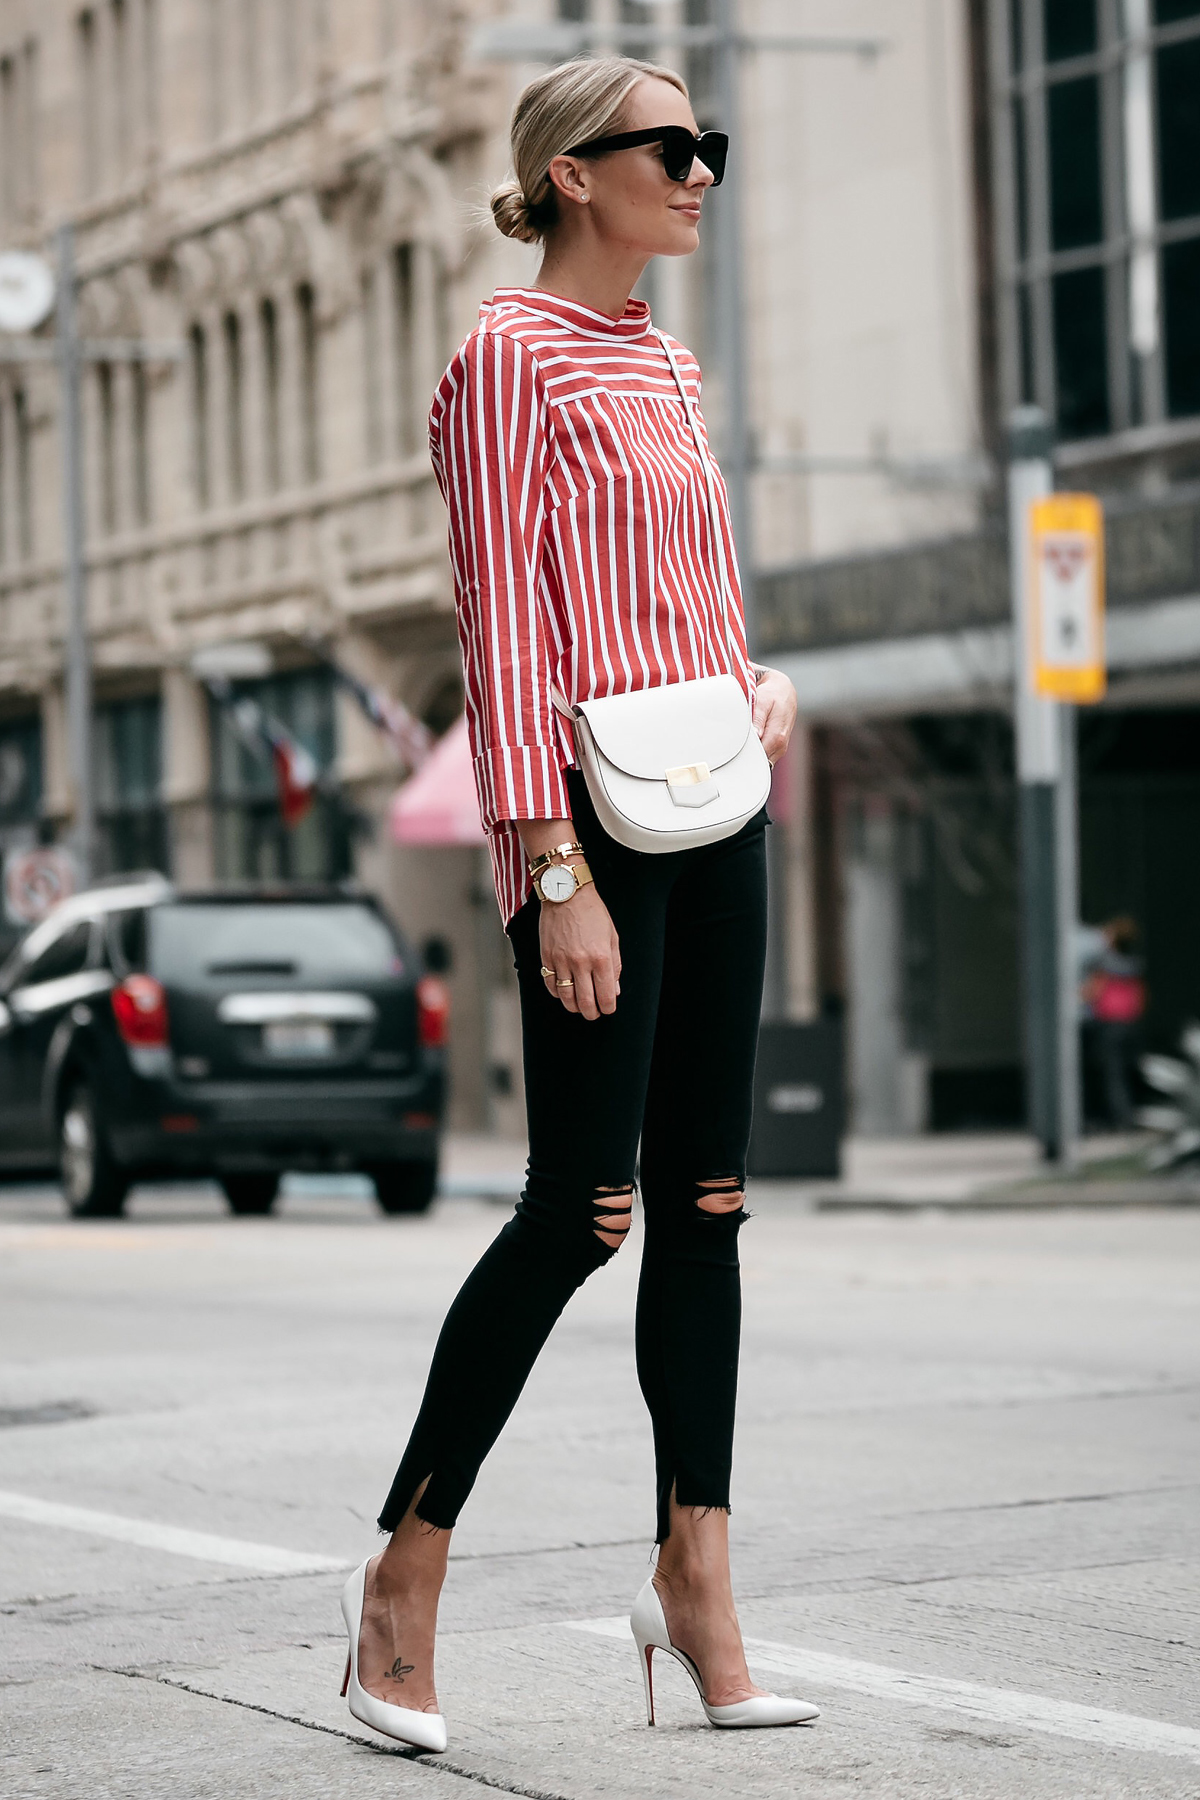 Blonde Woman Wearing Jcrew Red White Striped Shirt Black Ripped Skinny Jeans Outfit Celine White Trotteur Handbag Christian Louboutin White Pumps Fashion Jackson Dallas Blogger Fashion Blogger Street Style